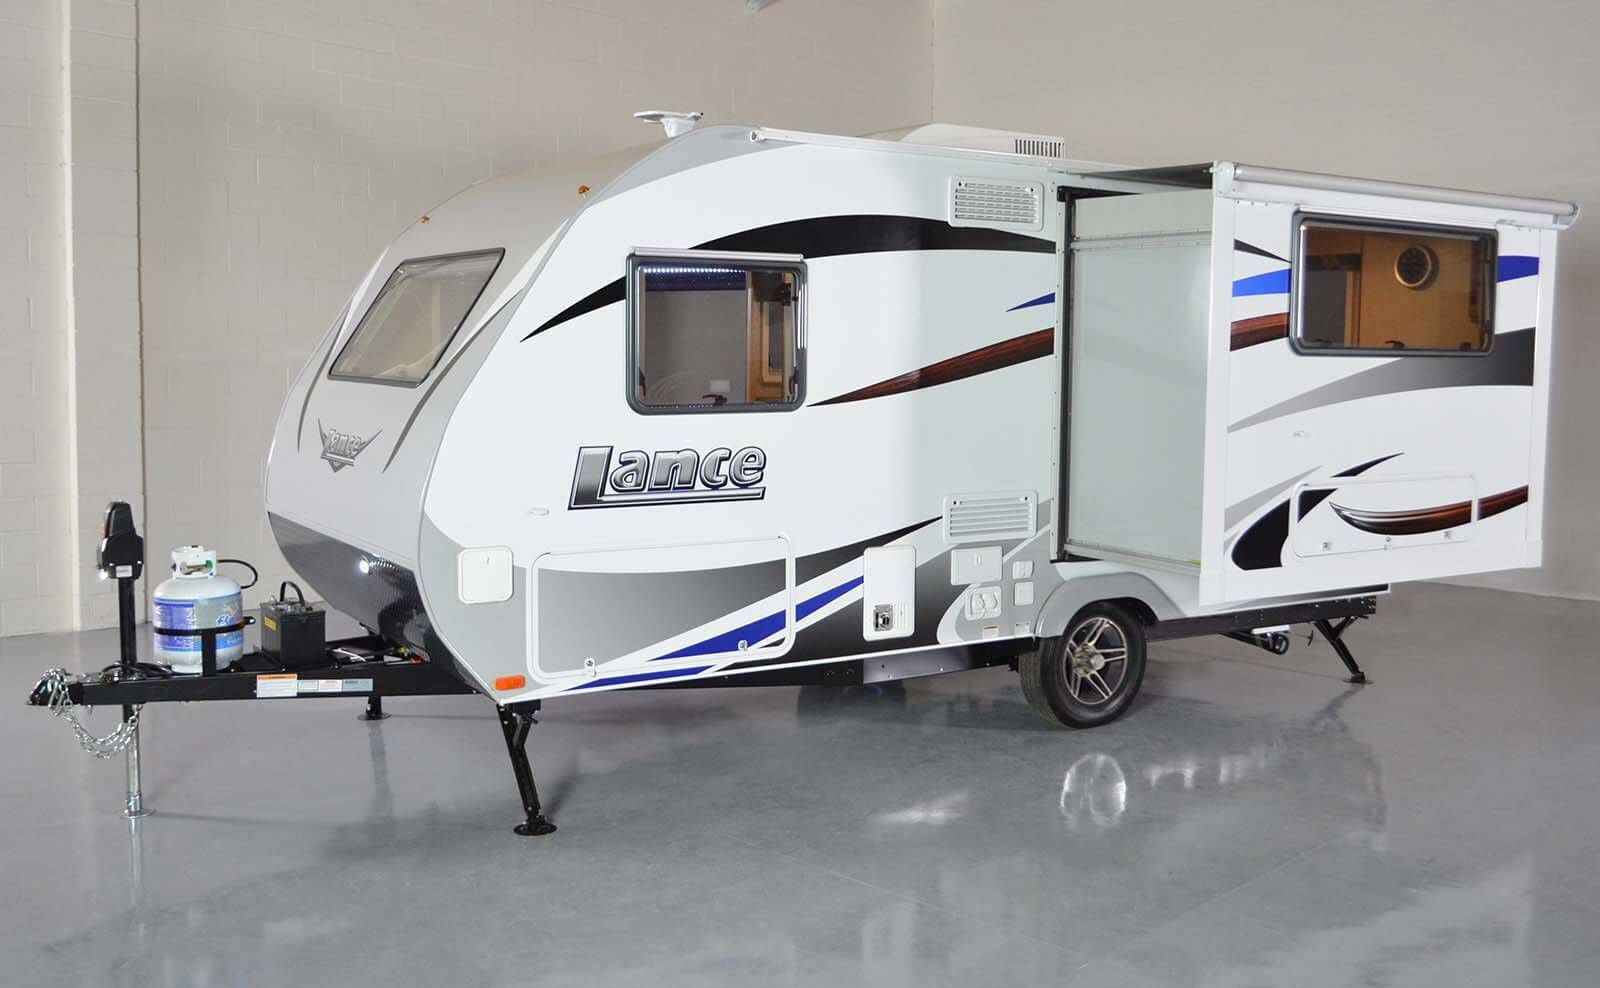 Lance 1575 Travel Trailer Super Slide 2650 Dry Weight Small